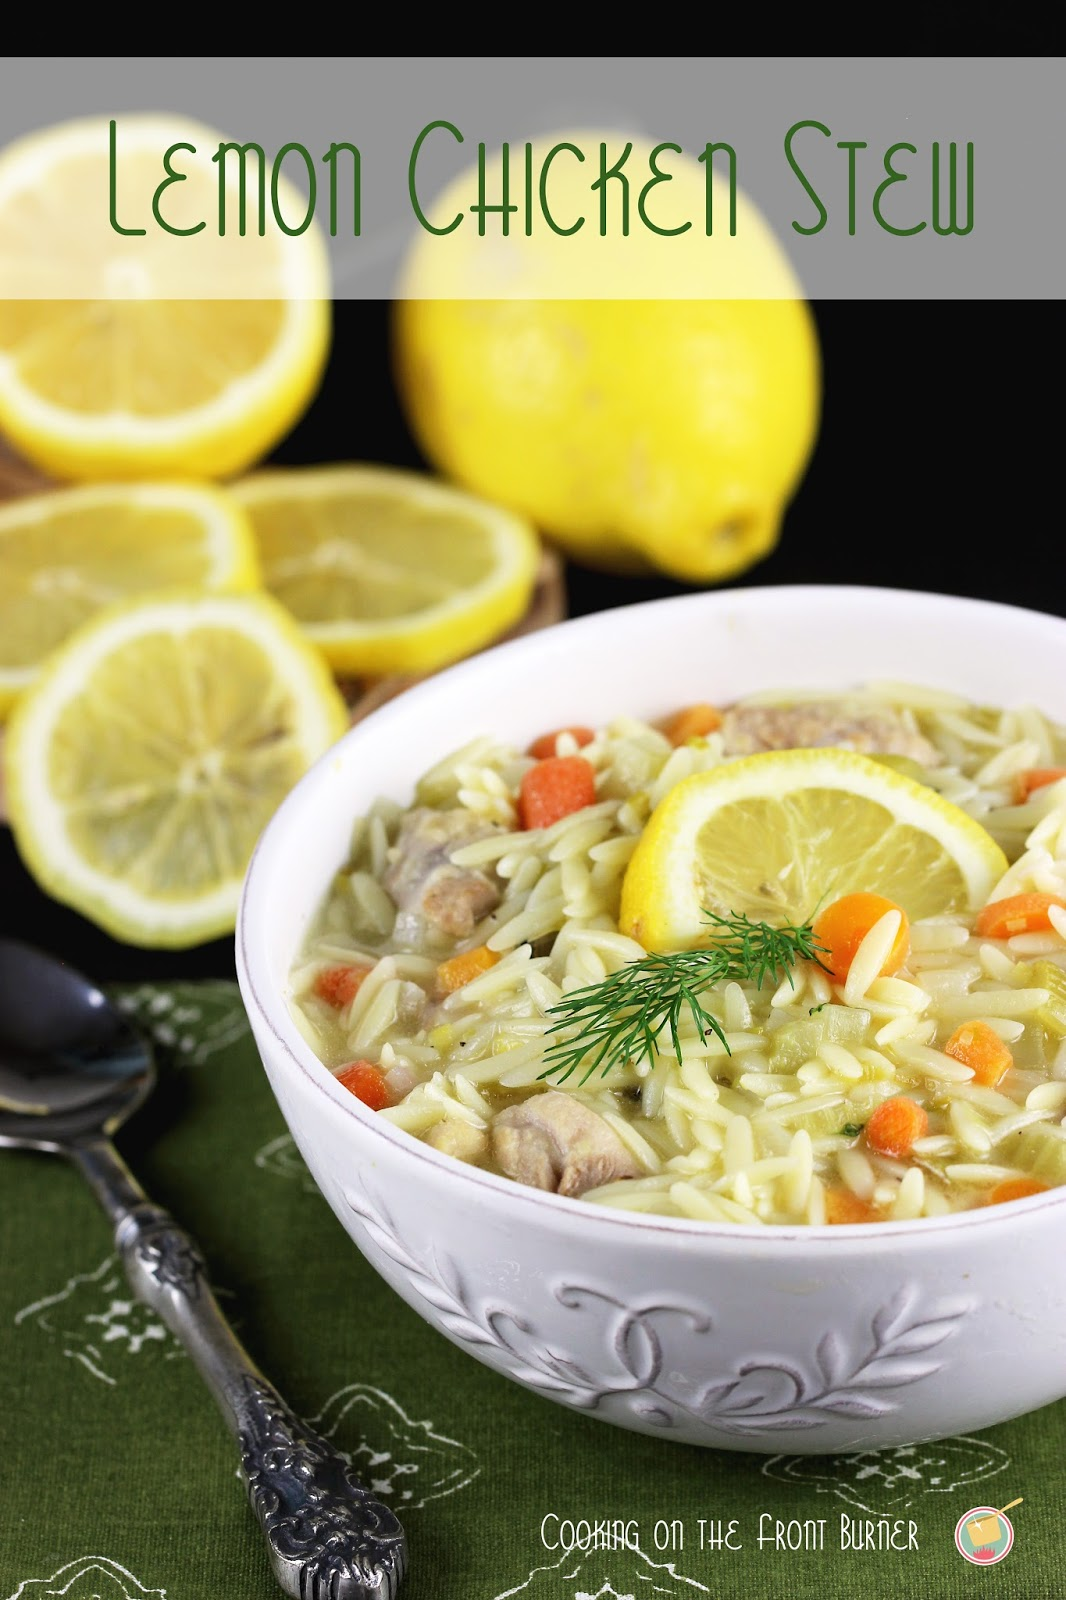 Lemon Chicken Stew | Cooking on the Front Burner #lemonchickenstew #dinner